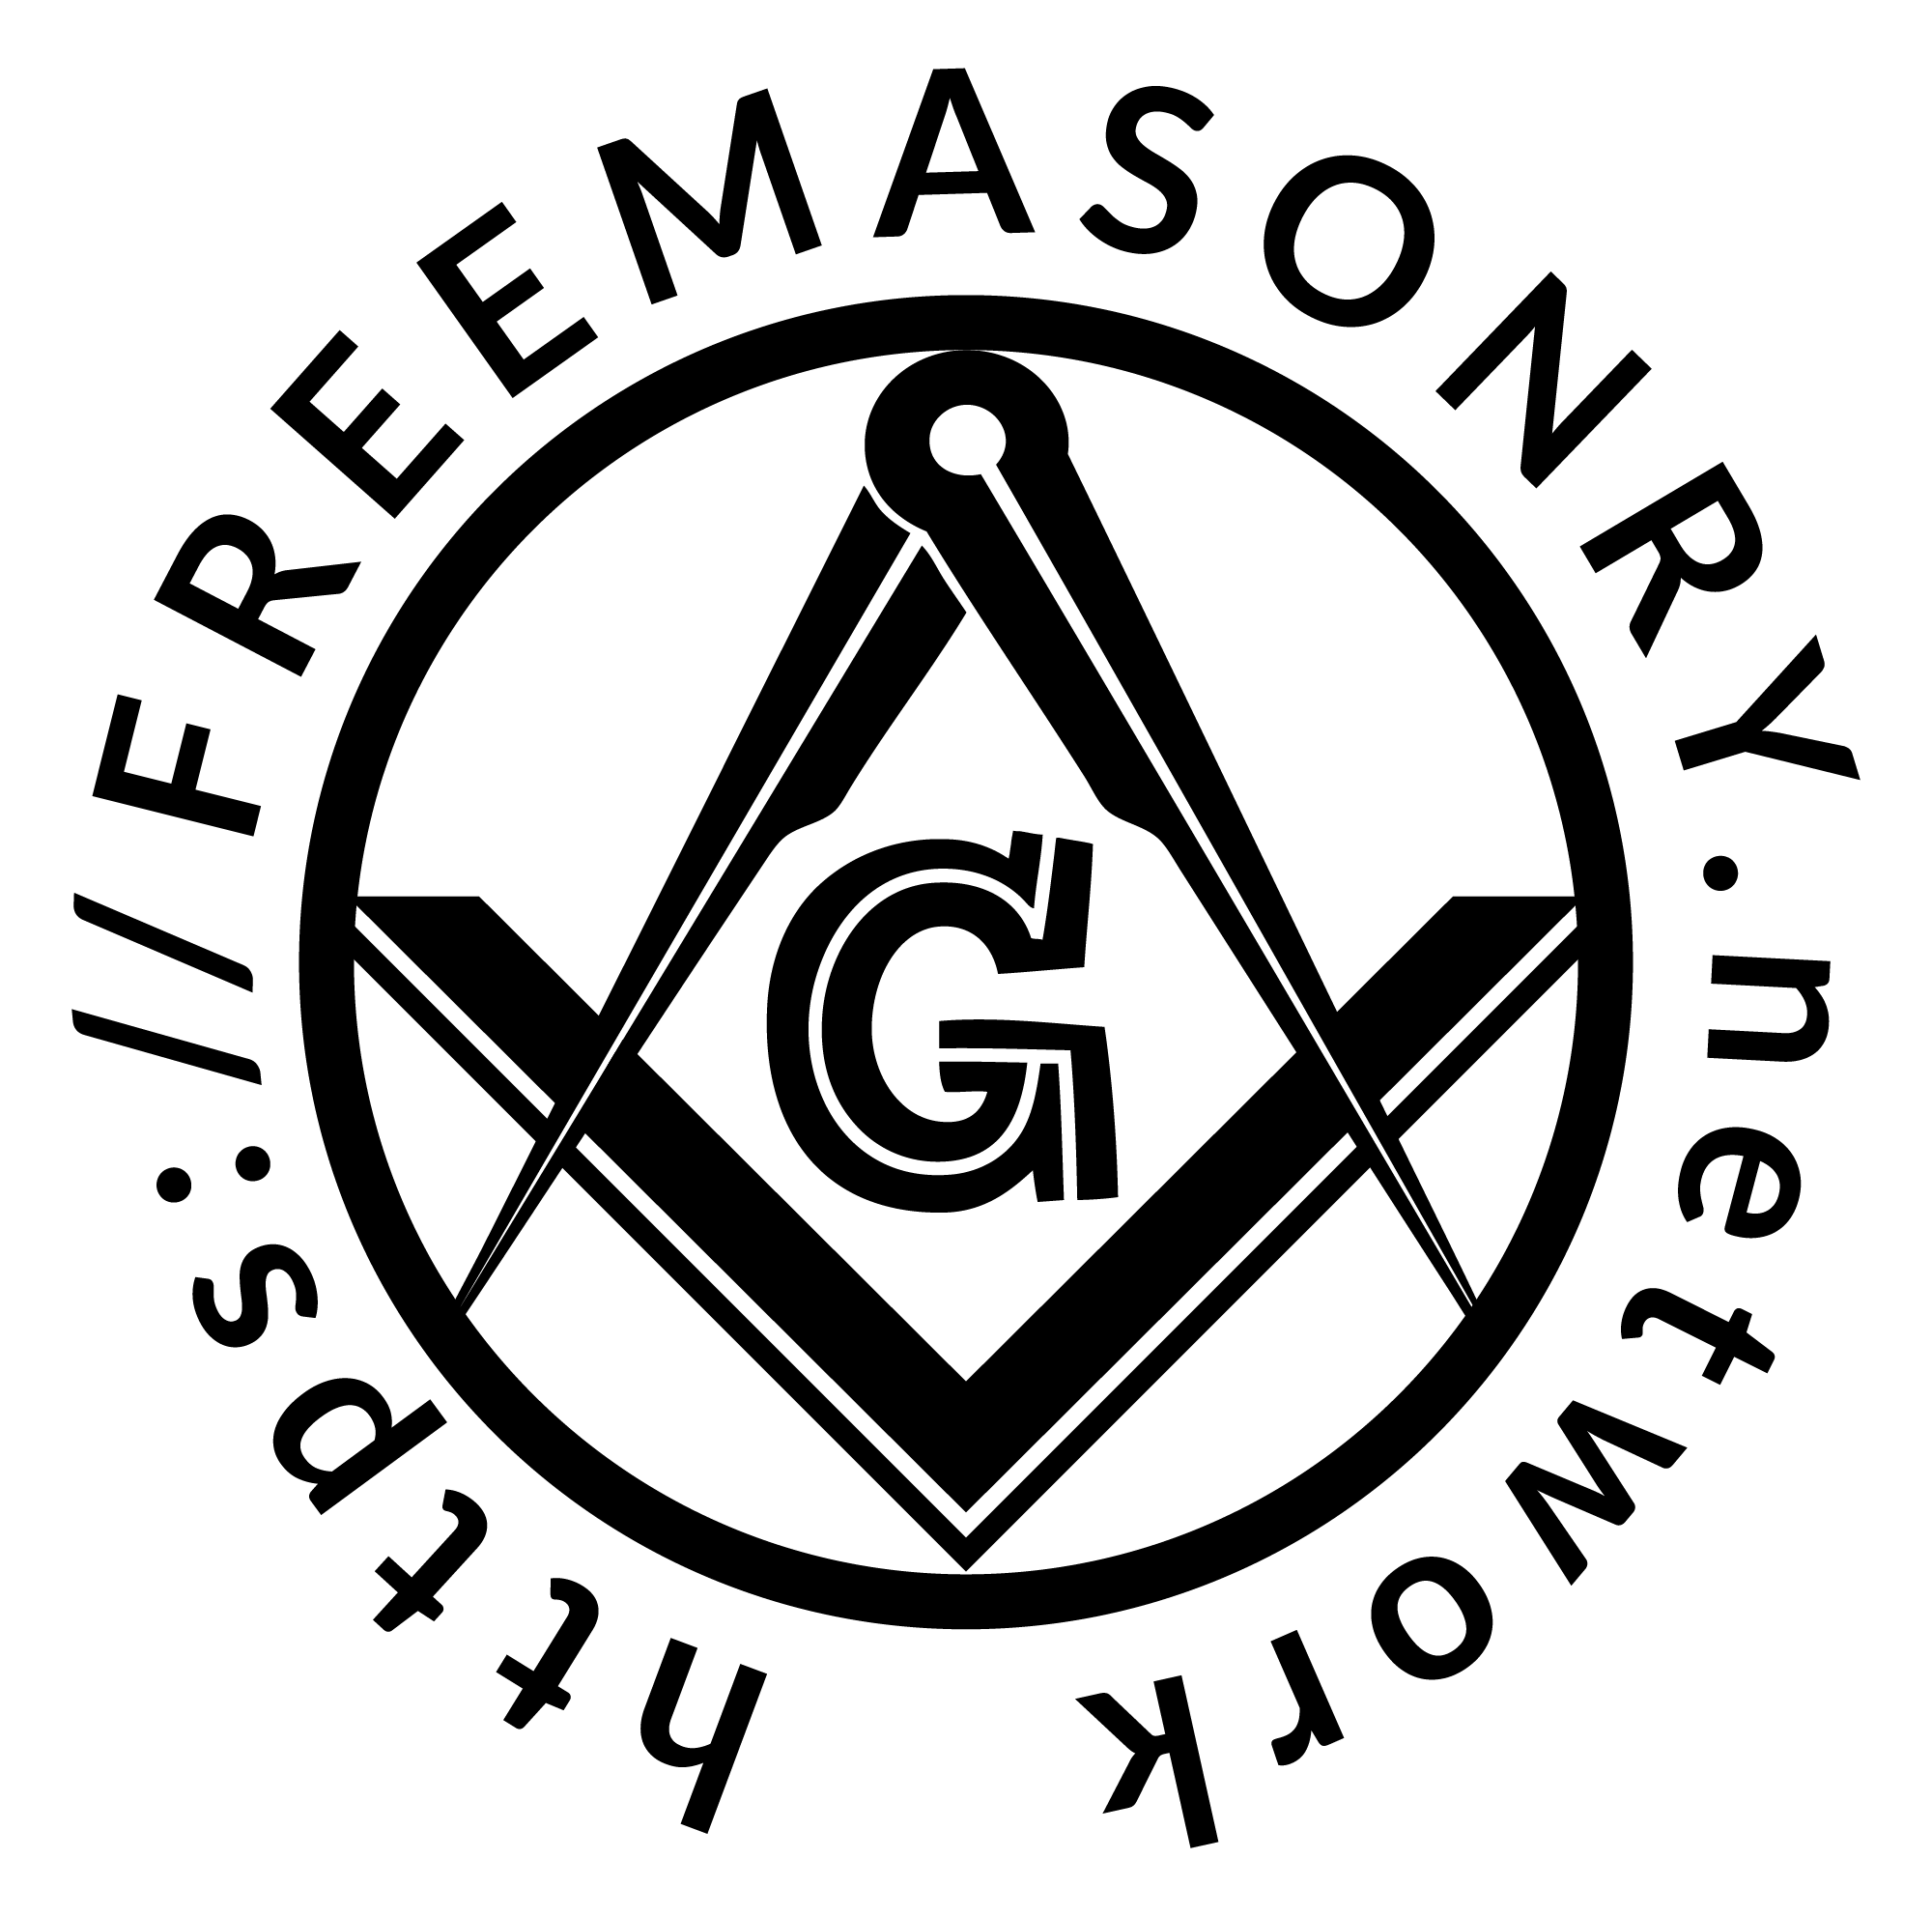 PRESERVATION OF MASONIC HERITAGE